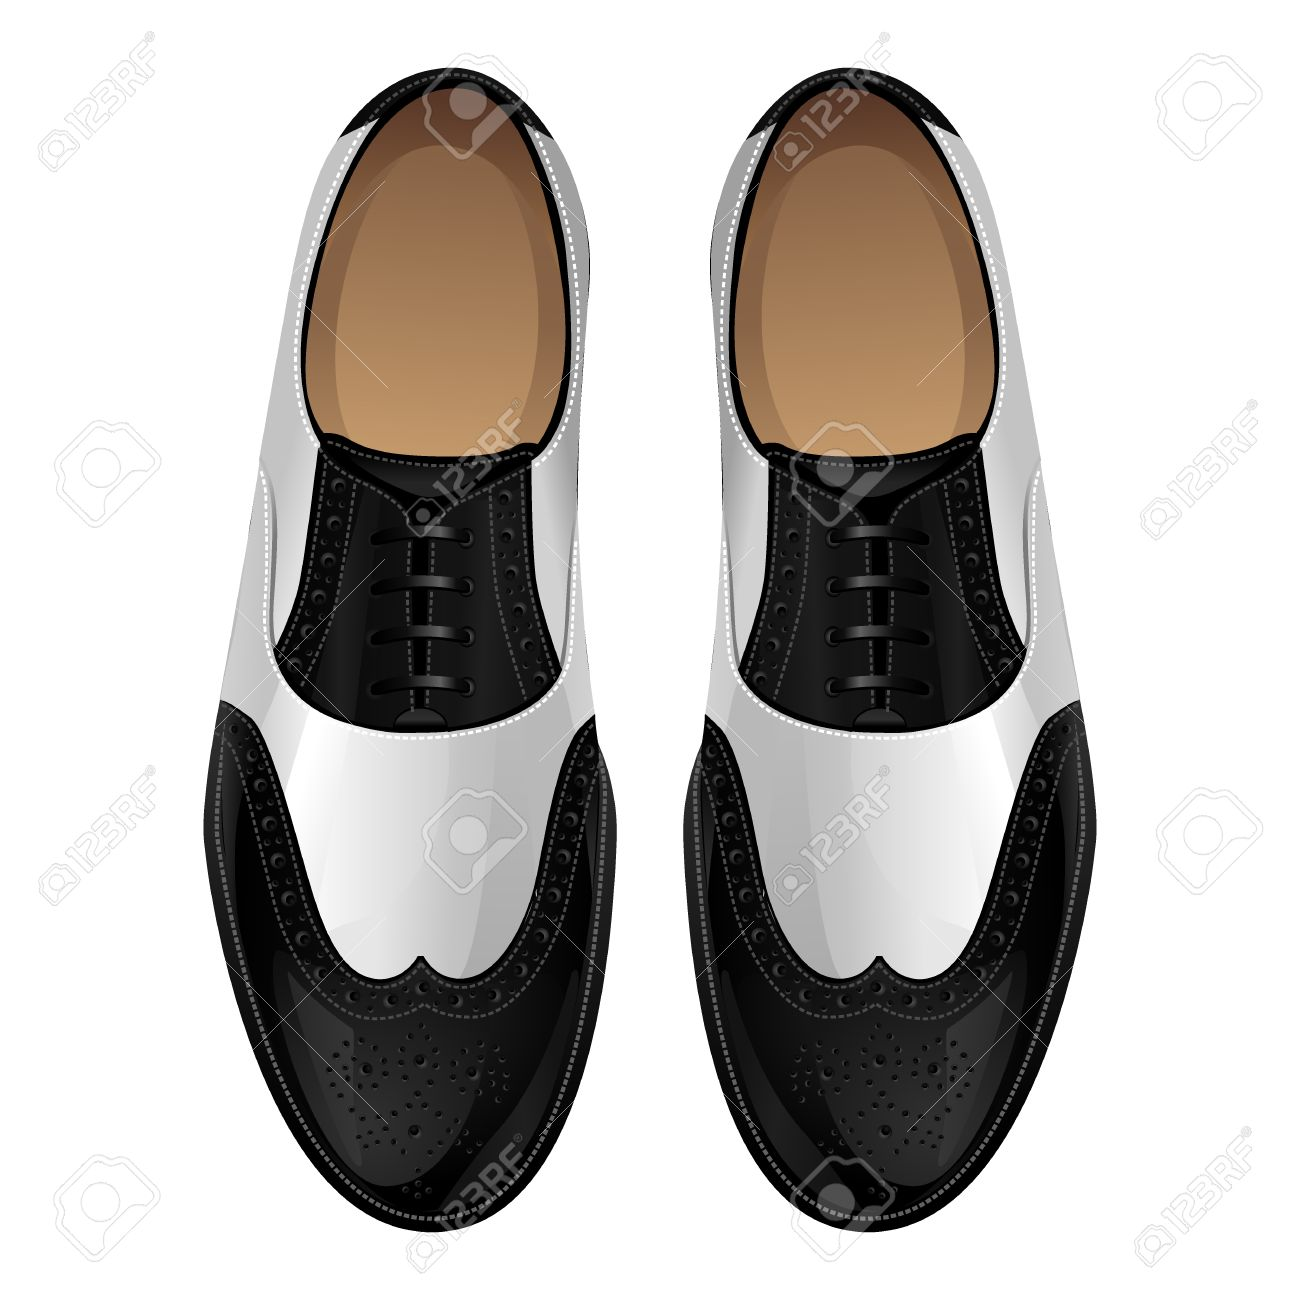 Black And White Classic Oxford Shoes Shoes In Retro Style